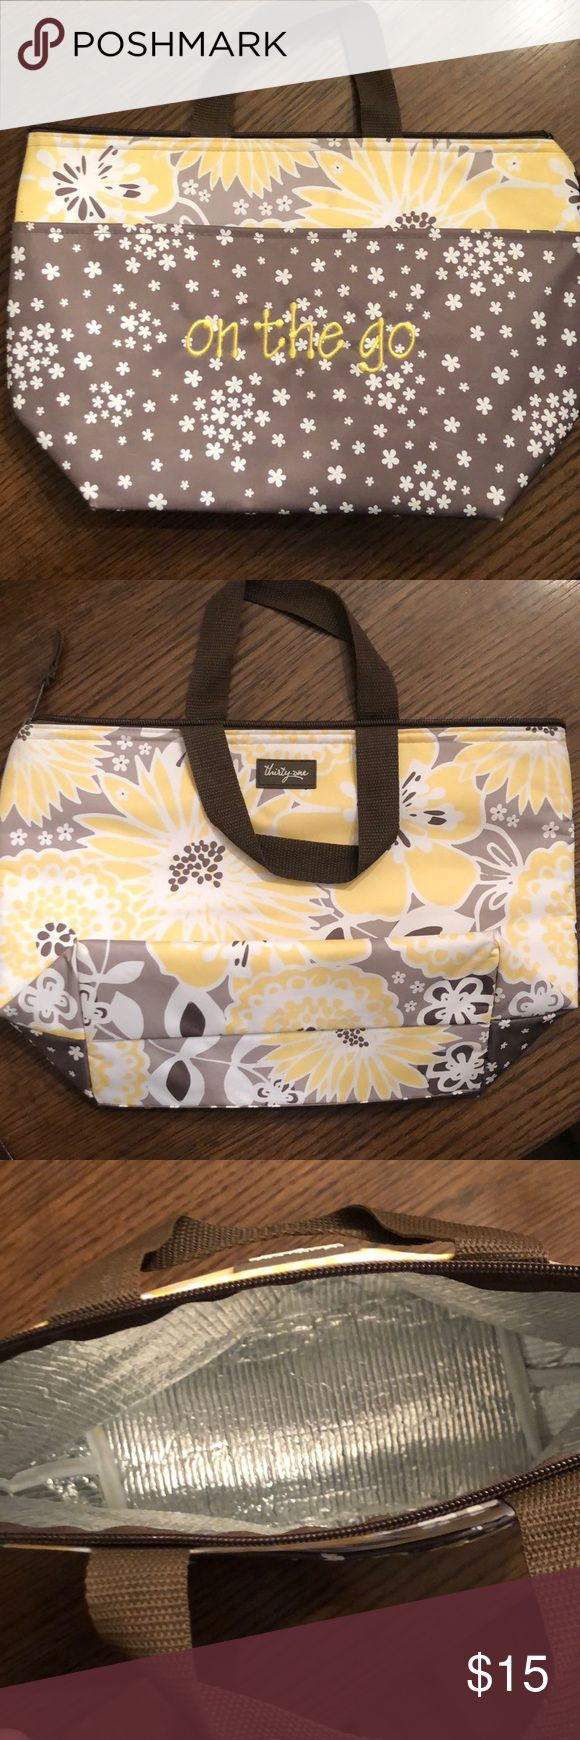 Thirty One lunch bag Like new! Zero flaws! Nice size with outer pocket! thirty one Bags